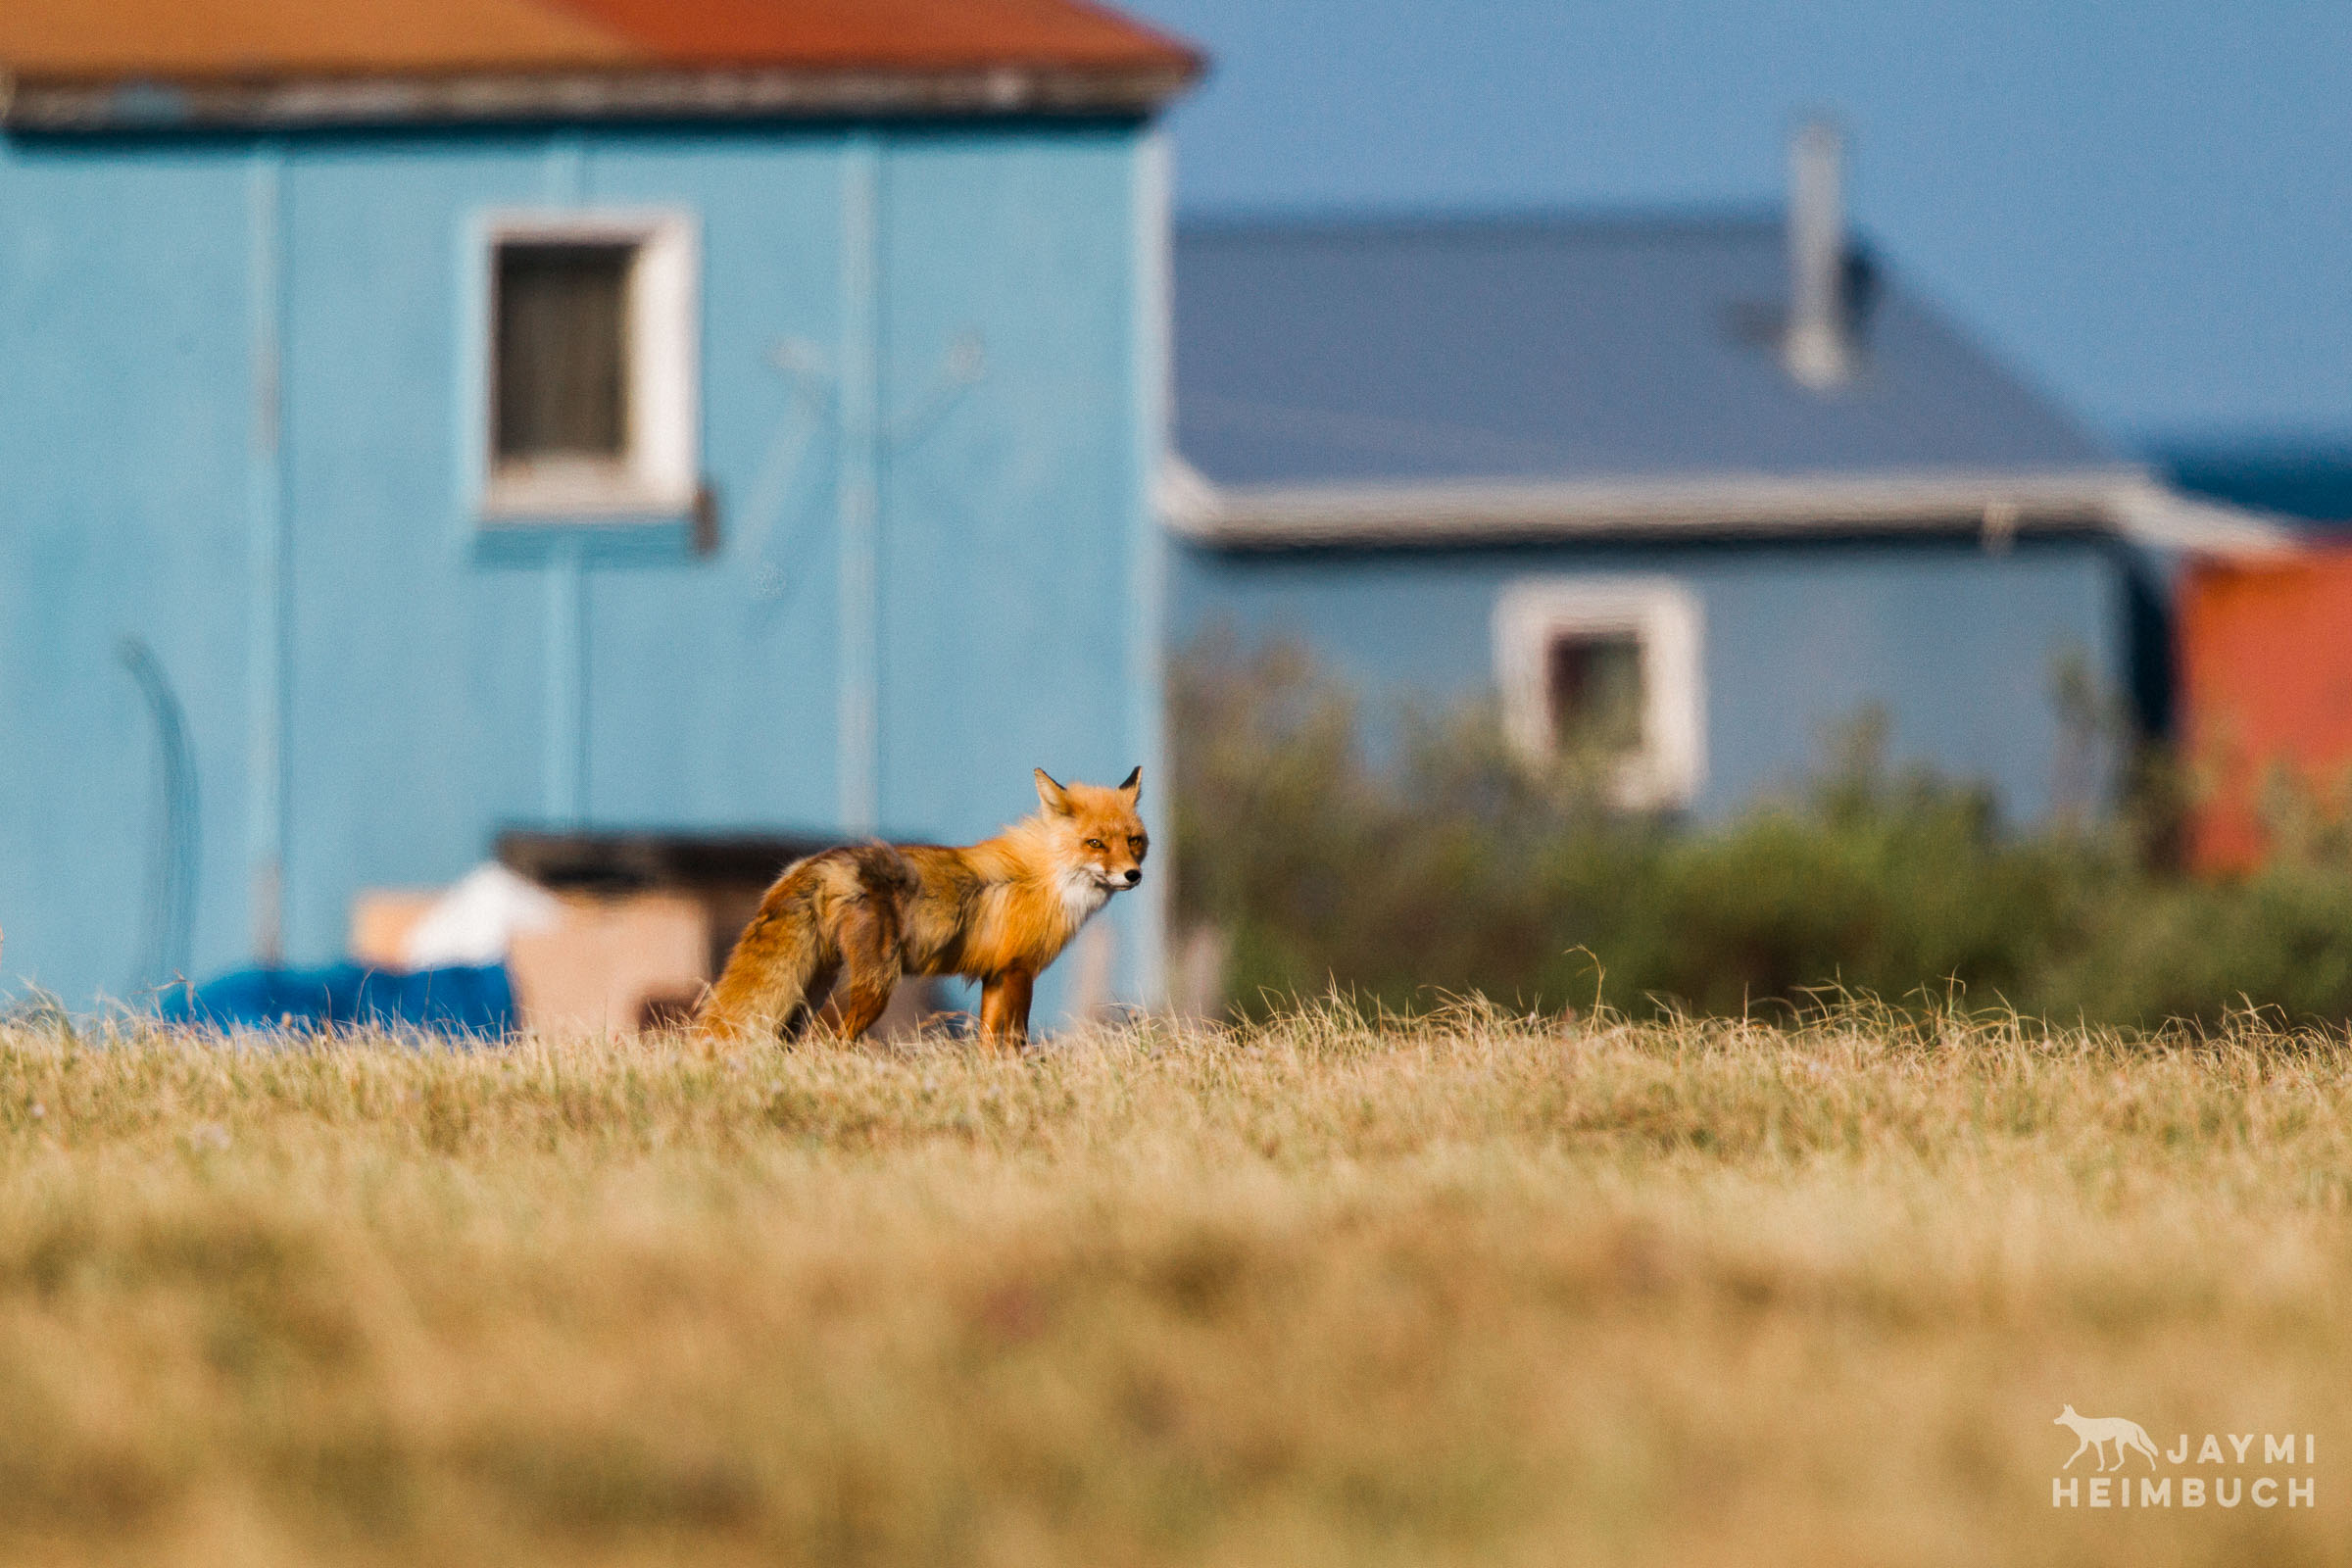 red fox among houses